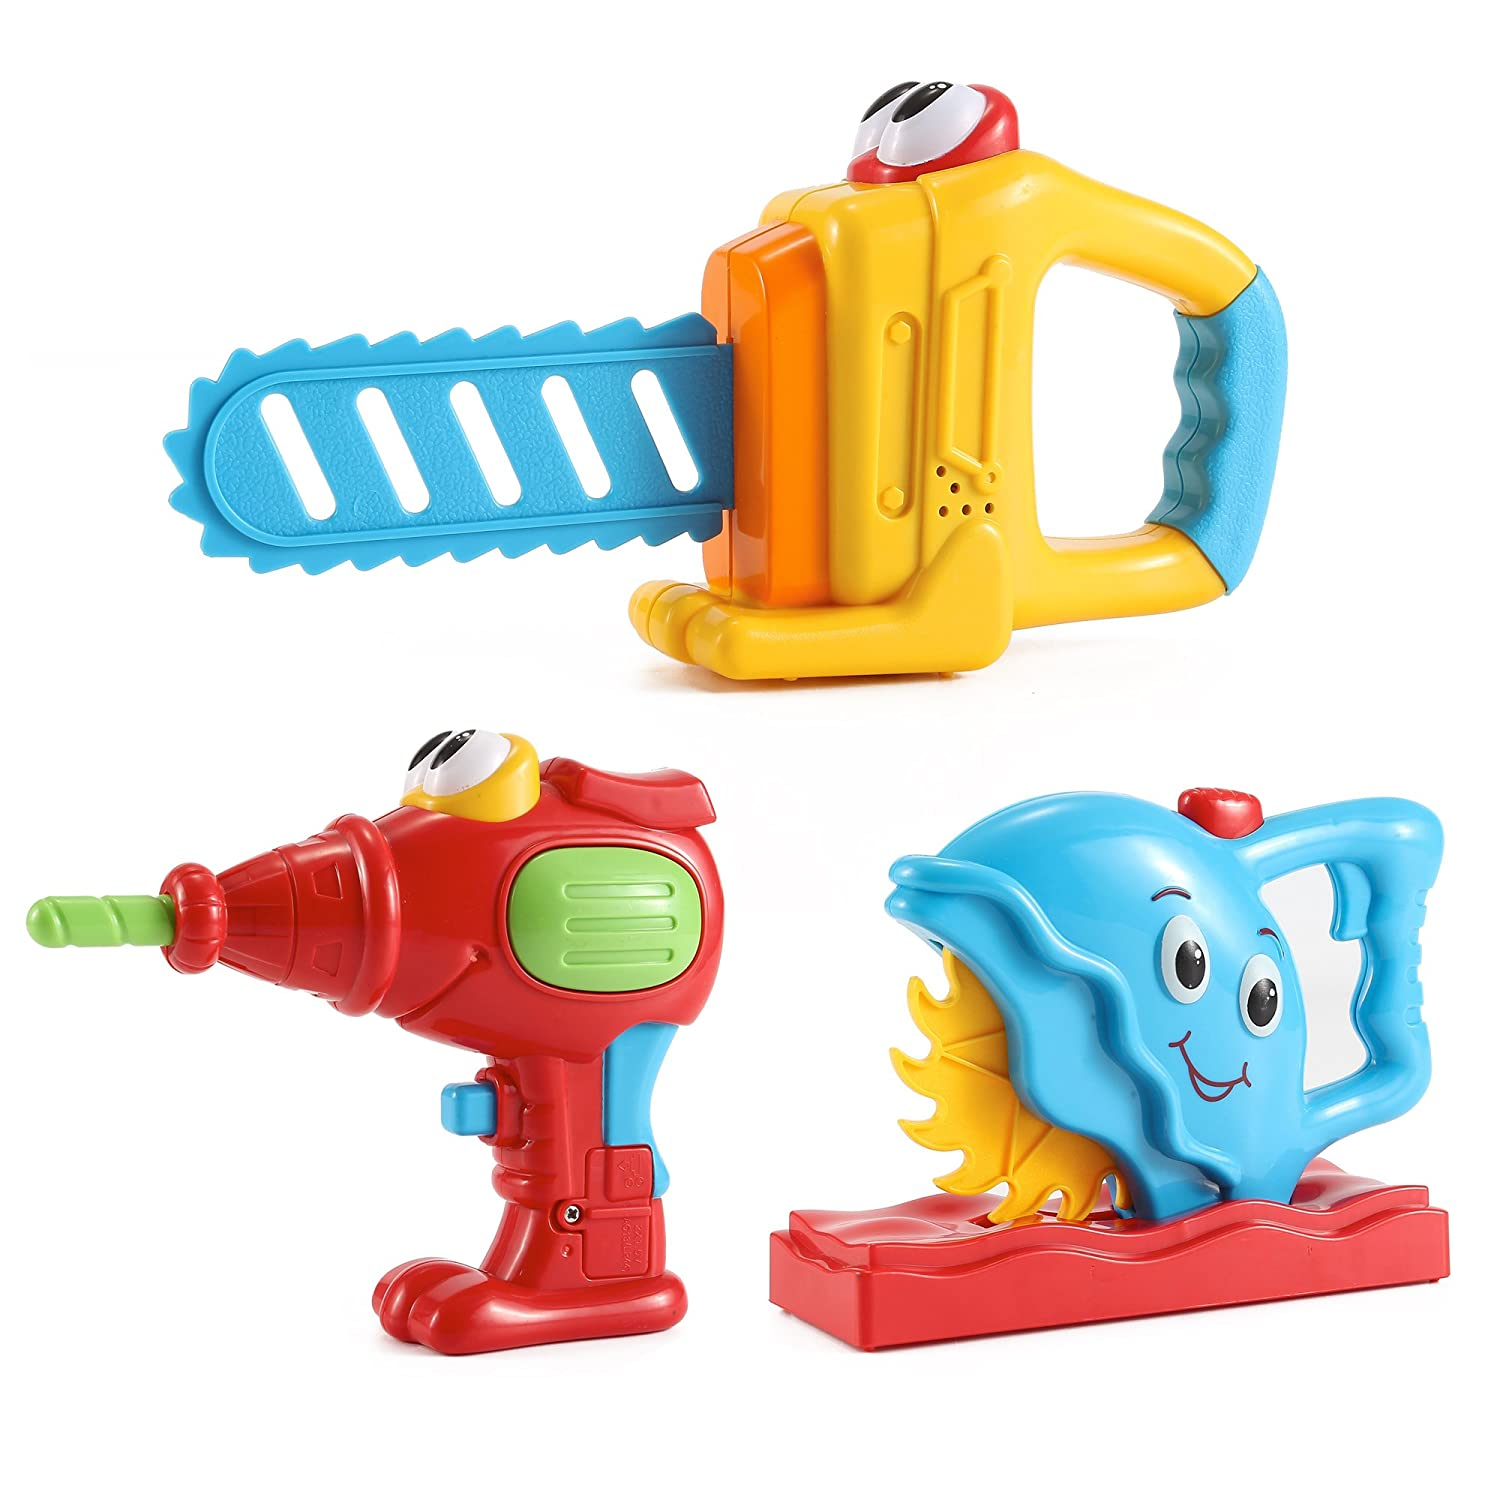 Liberty Imports Cartoon Electronic Handy Power Tools Set with Realistic Action and Sounds for Toddlers (Set of 3)